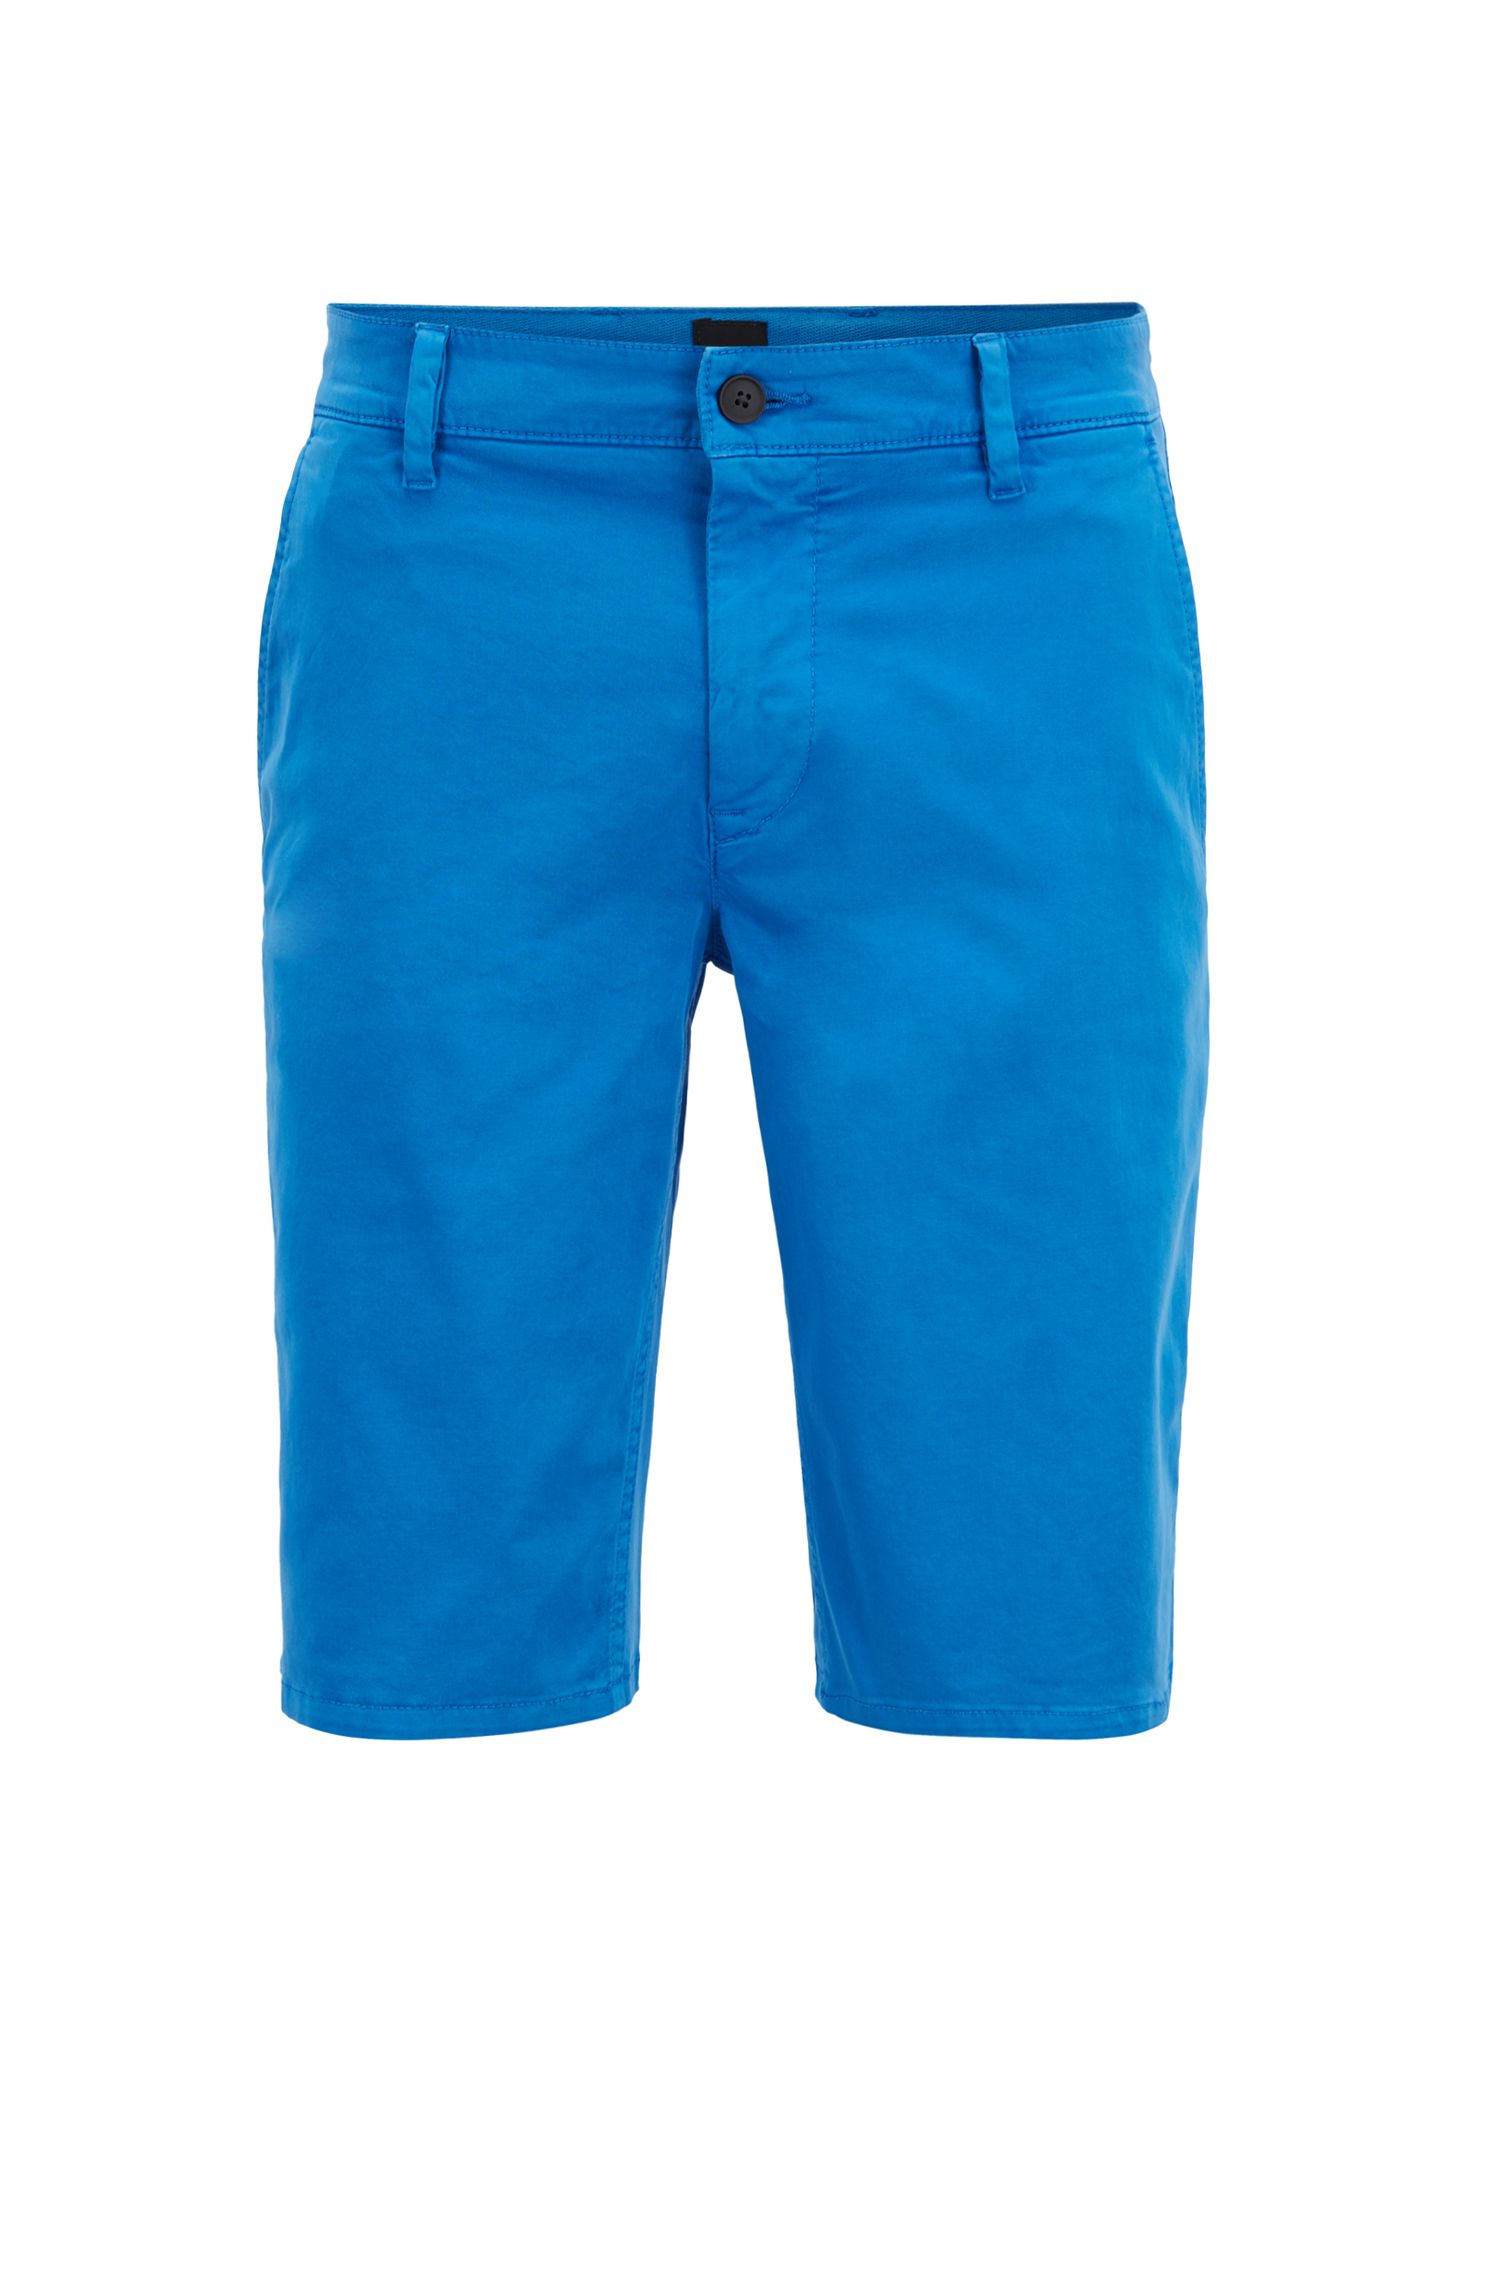 Slim-fit chino shorts in double-dyed stretch satin, Light Blue